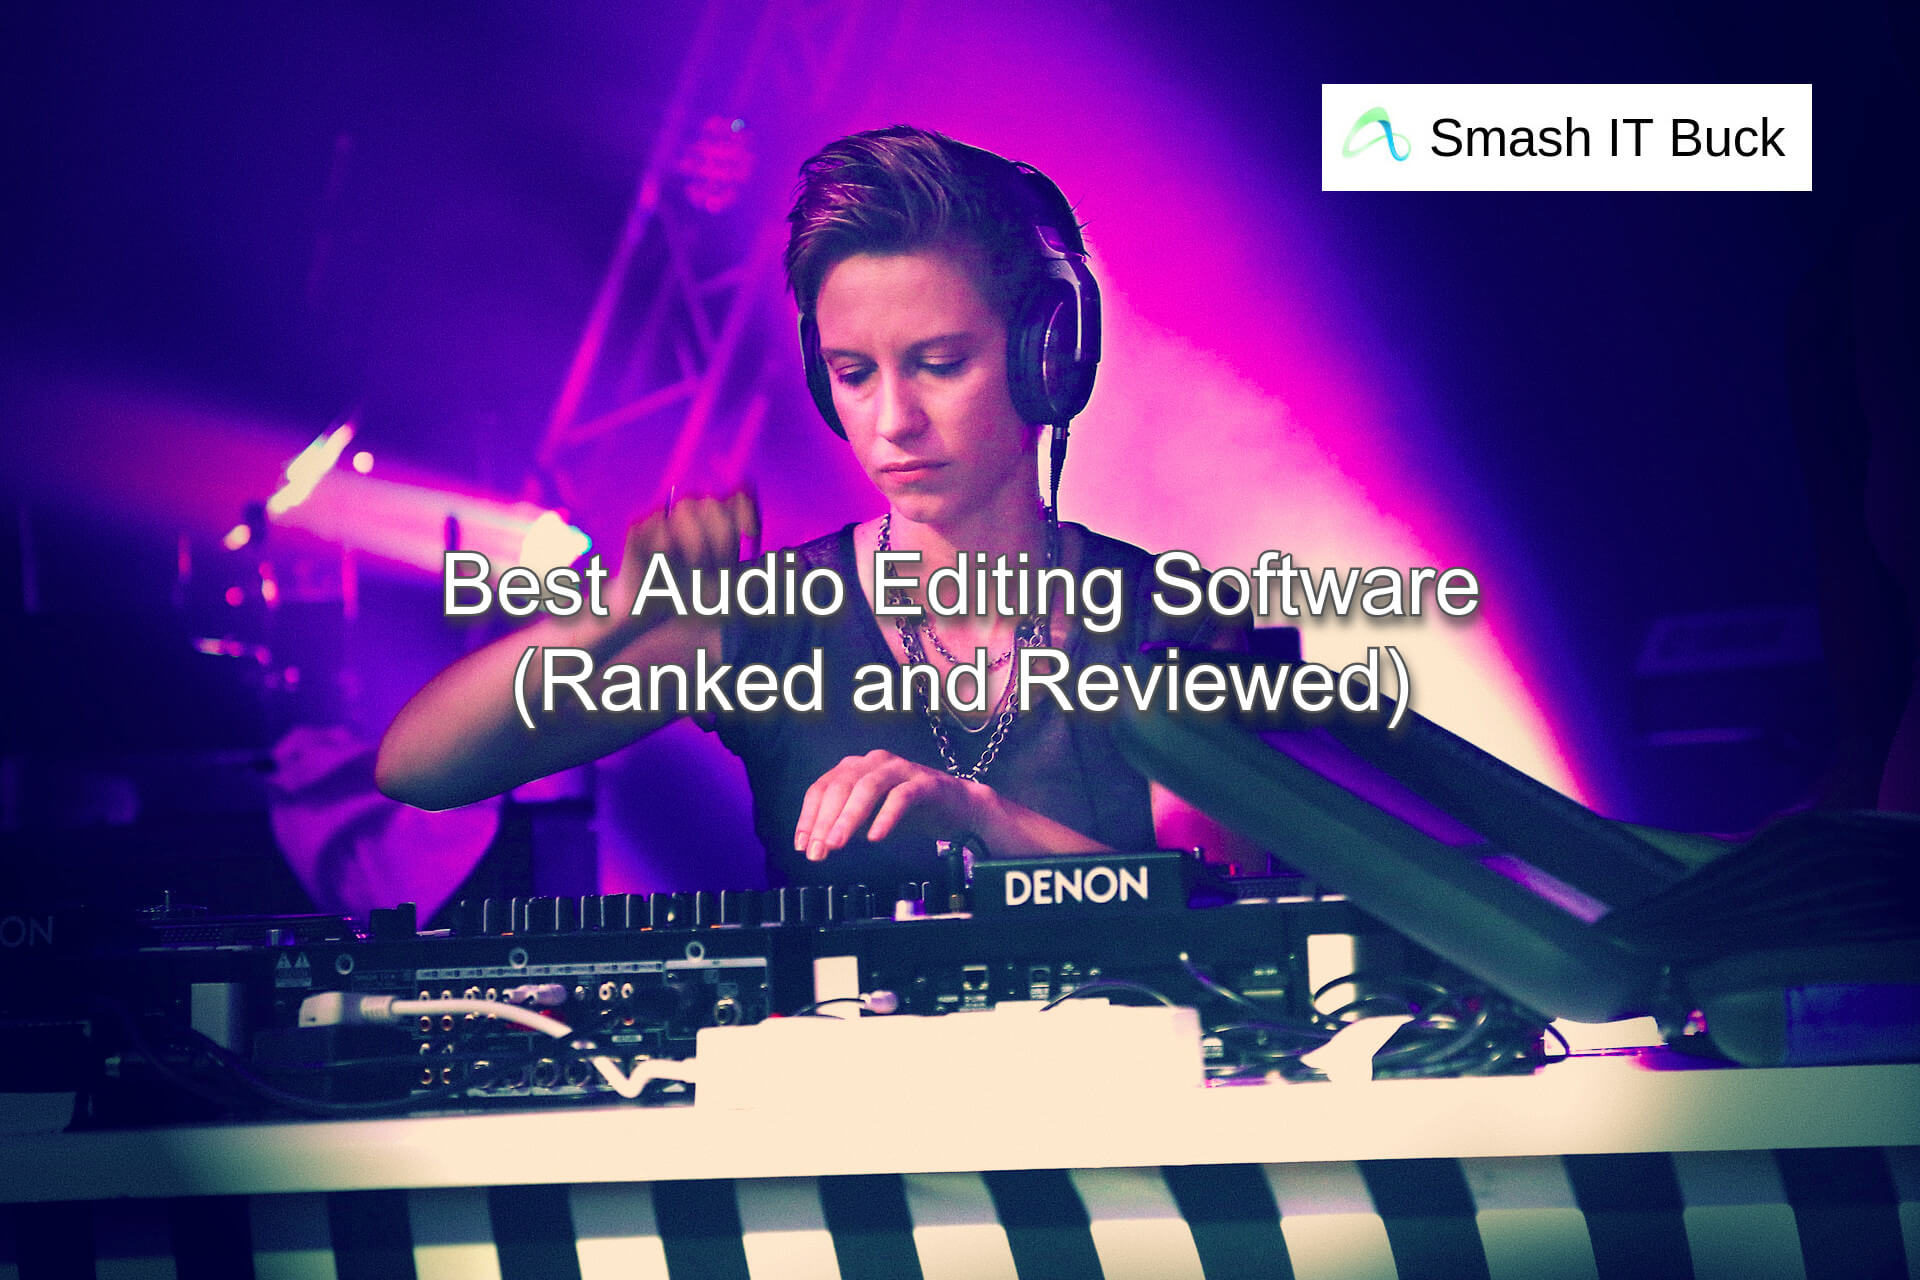 Best Audio Editing Software to use in 2021